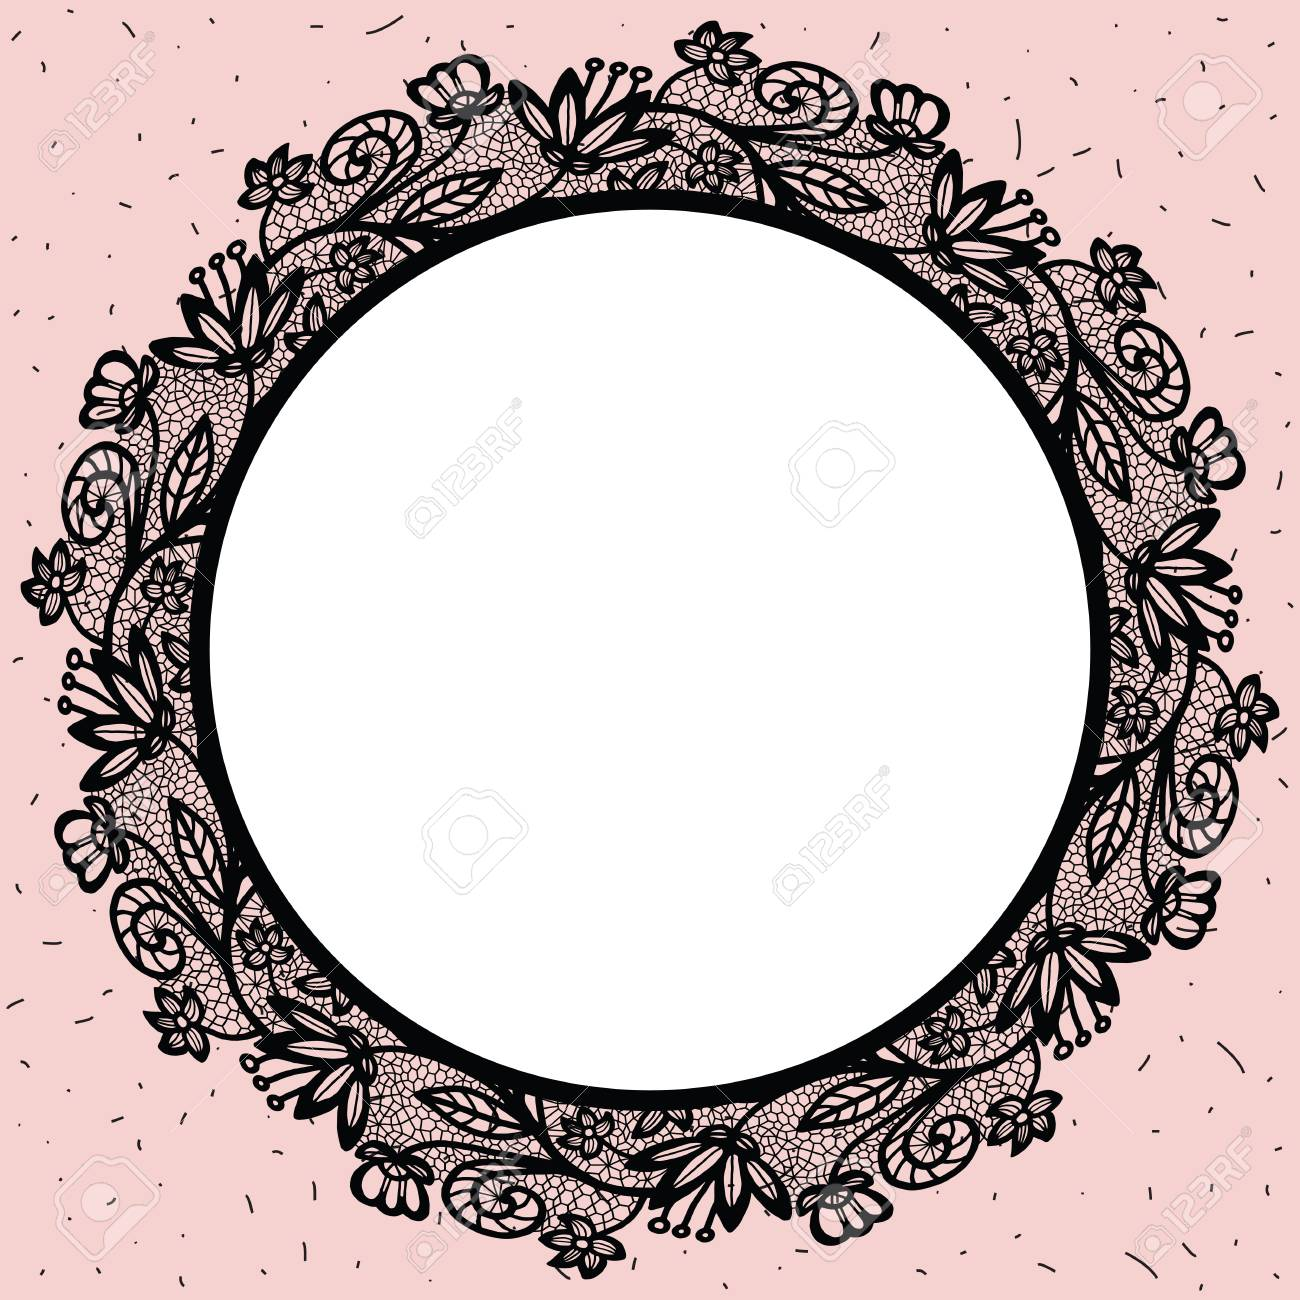 lacy round frame vector illustration black lace round beautiful rh 123rf com lace border vector free lace border vector free